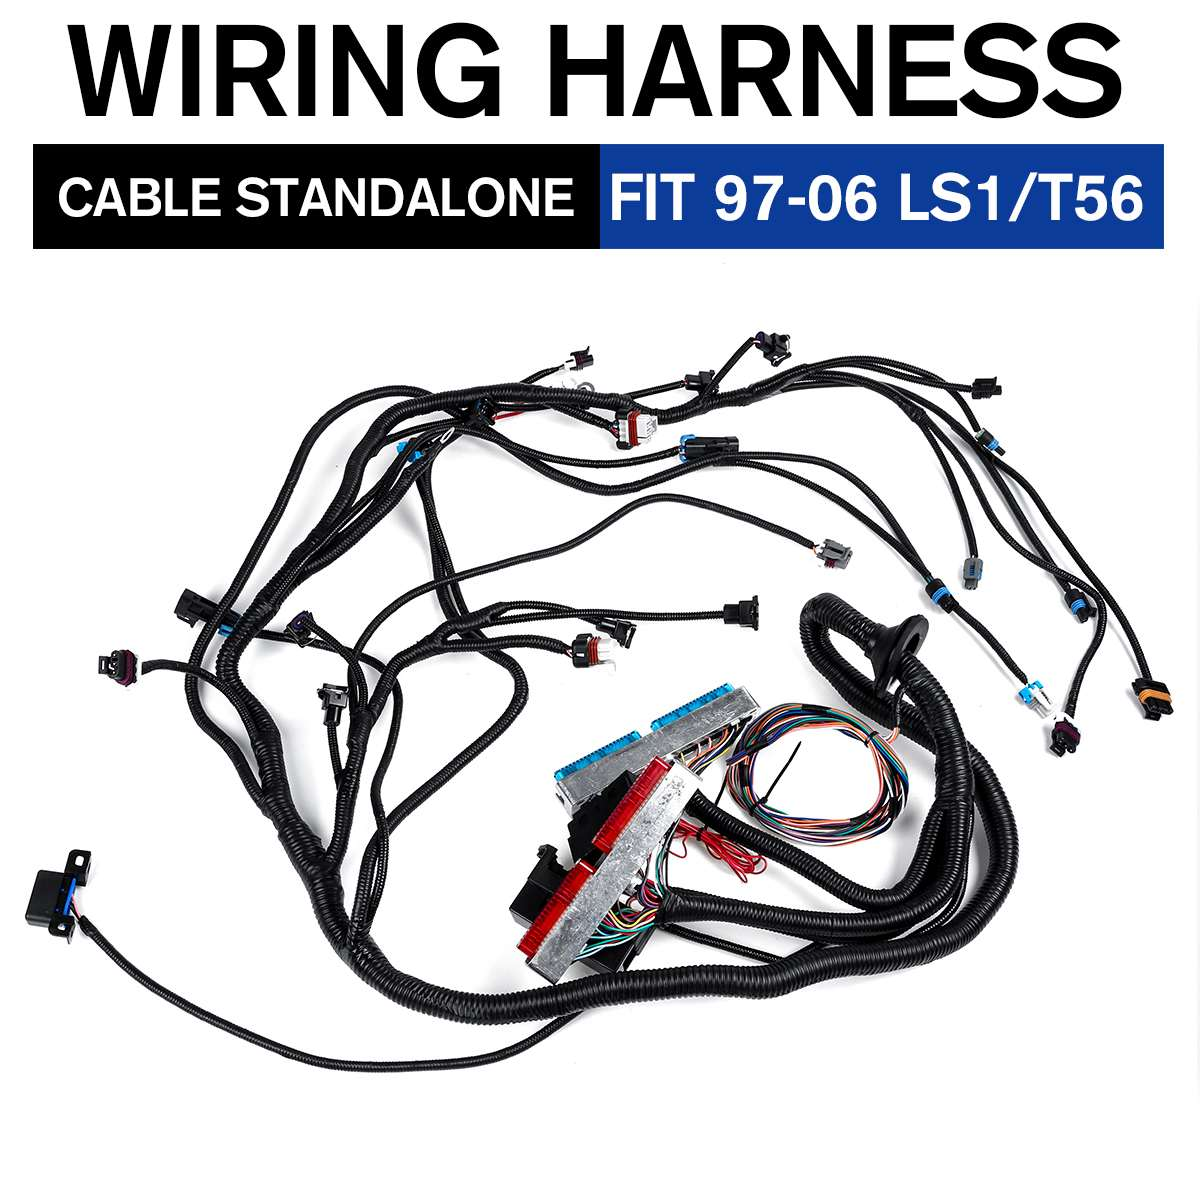 [ZHKZ_3066]  1997 2006 For LS1 Engines VORTEC STANDALONE WIRING HARNESS Drive By Wire T56  / Non Electric Tran 4.8 5.3 6.0| | - AliExpress | T56 Wiring Harness |  | AliExpress